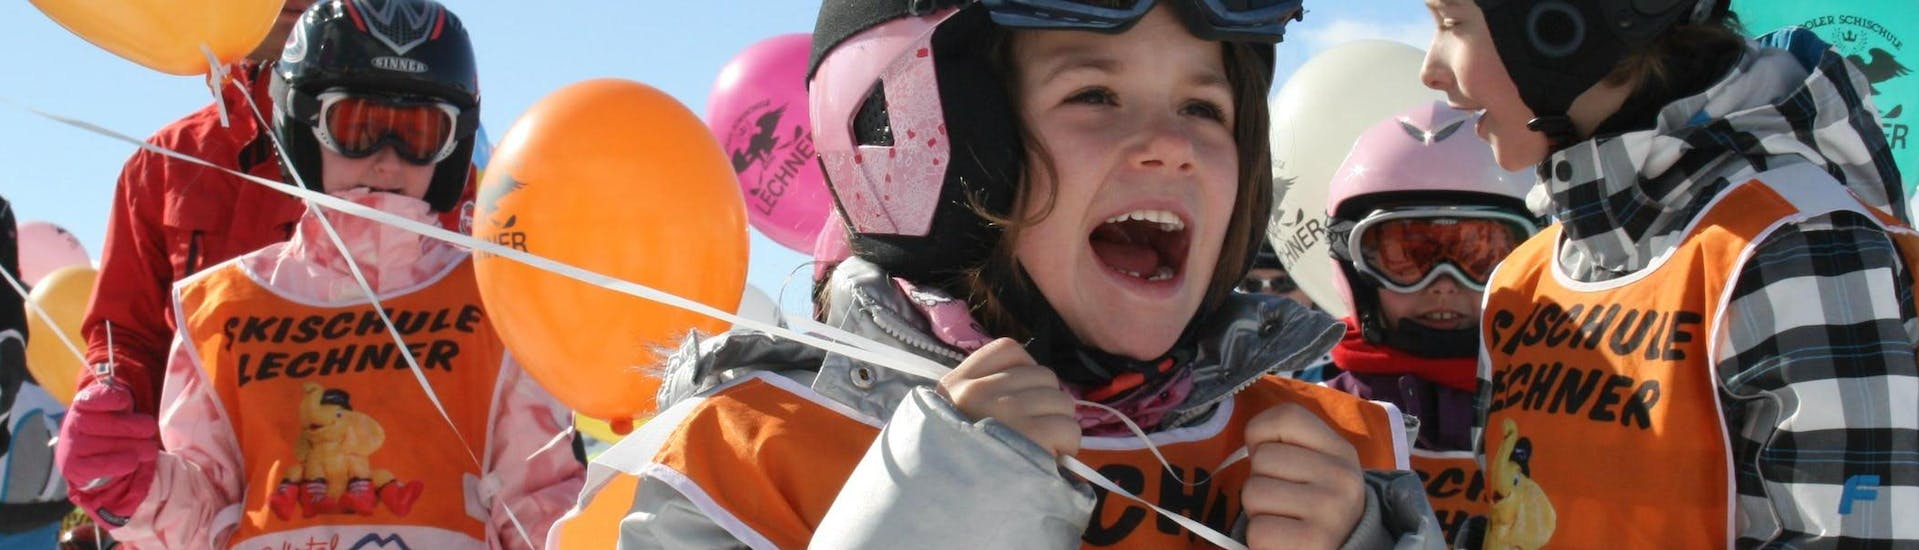 Several children taking part in the Private Ski Lessons for Kids - All Ages organised by the ski school Skischule Lechner are holding balloons with the ski school's logo printed on them.